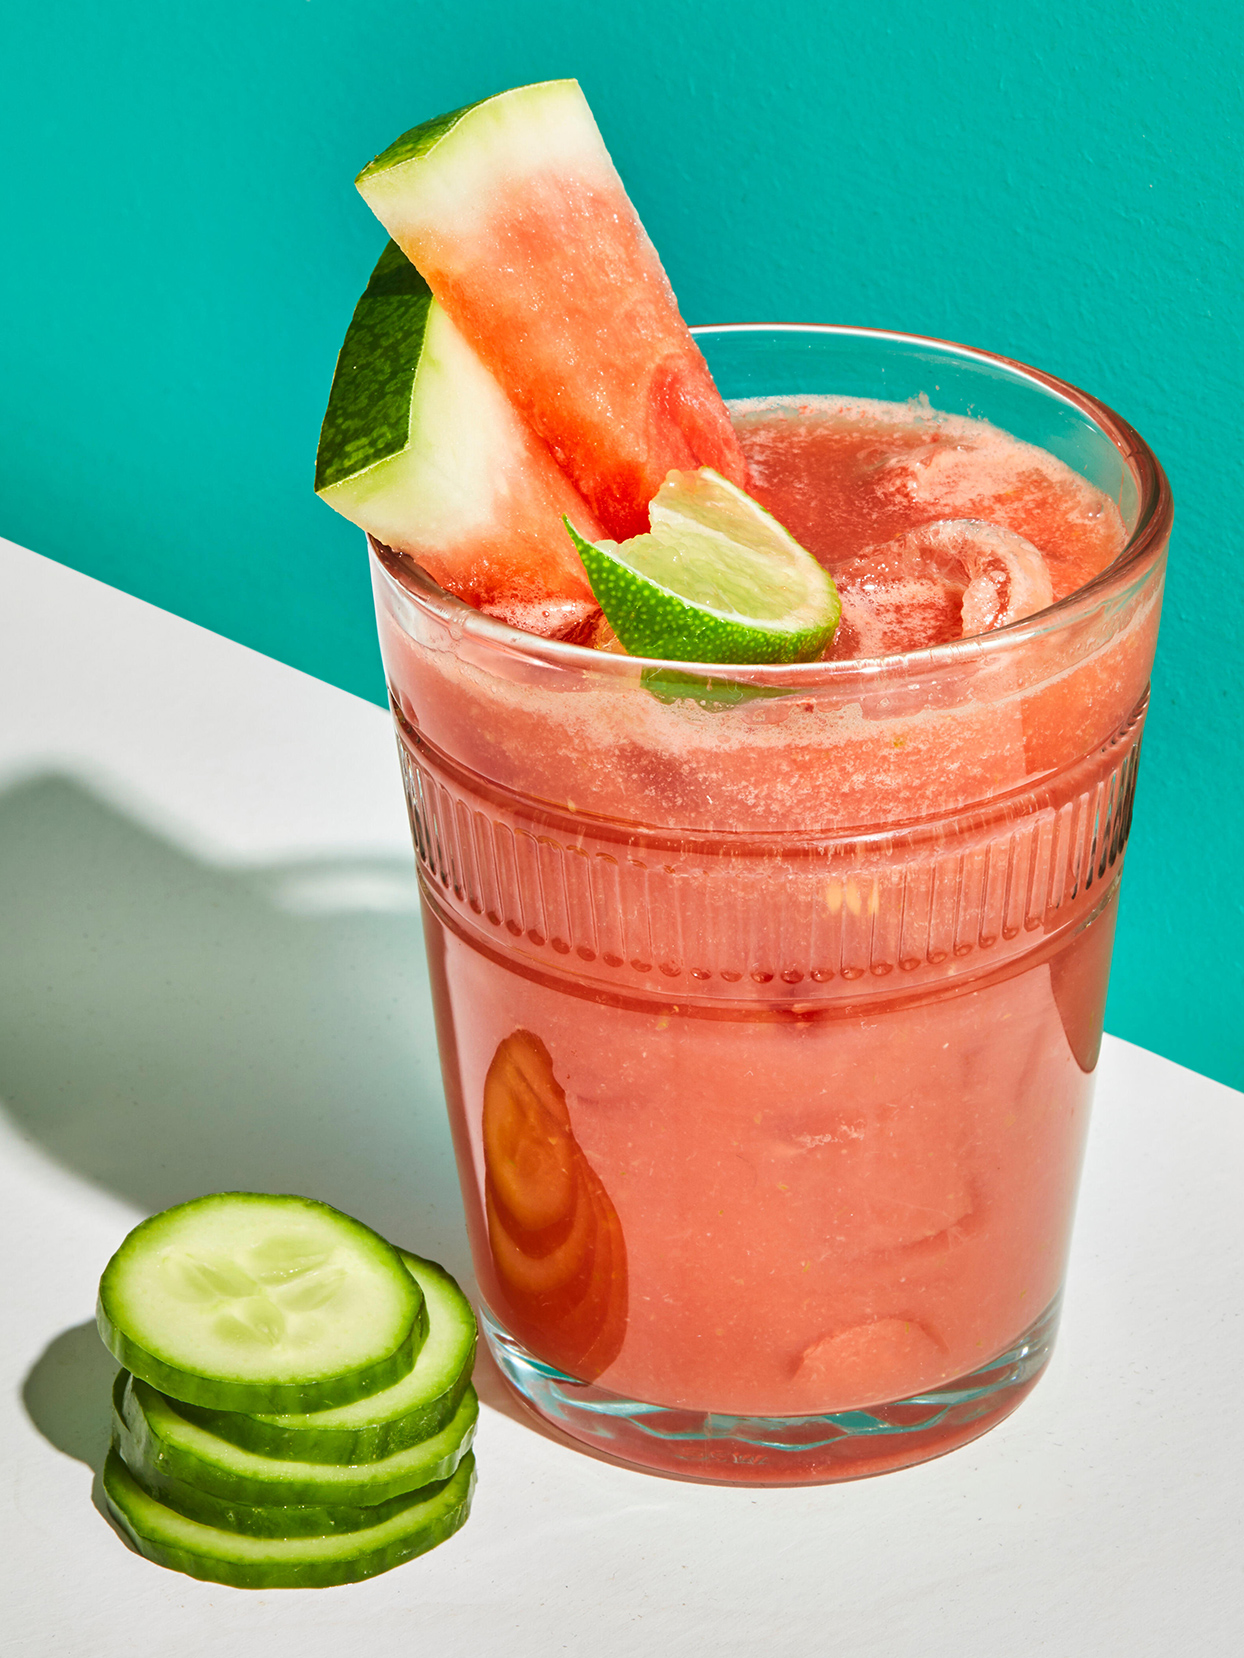 Watermelon-Cucumber-Lime Refresher